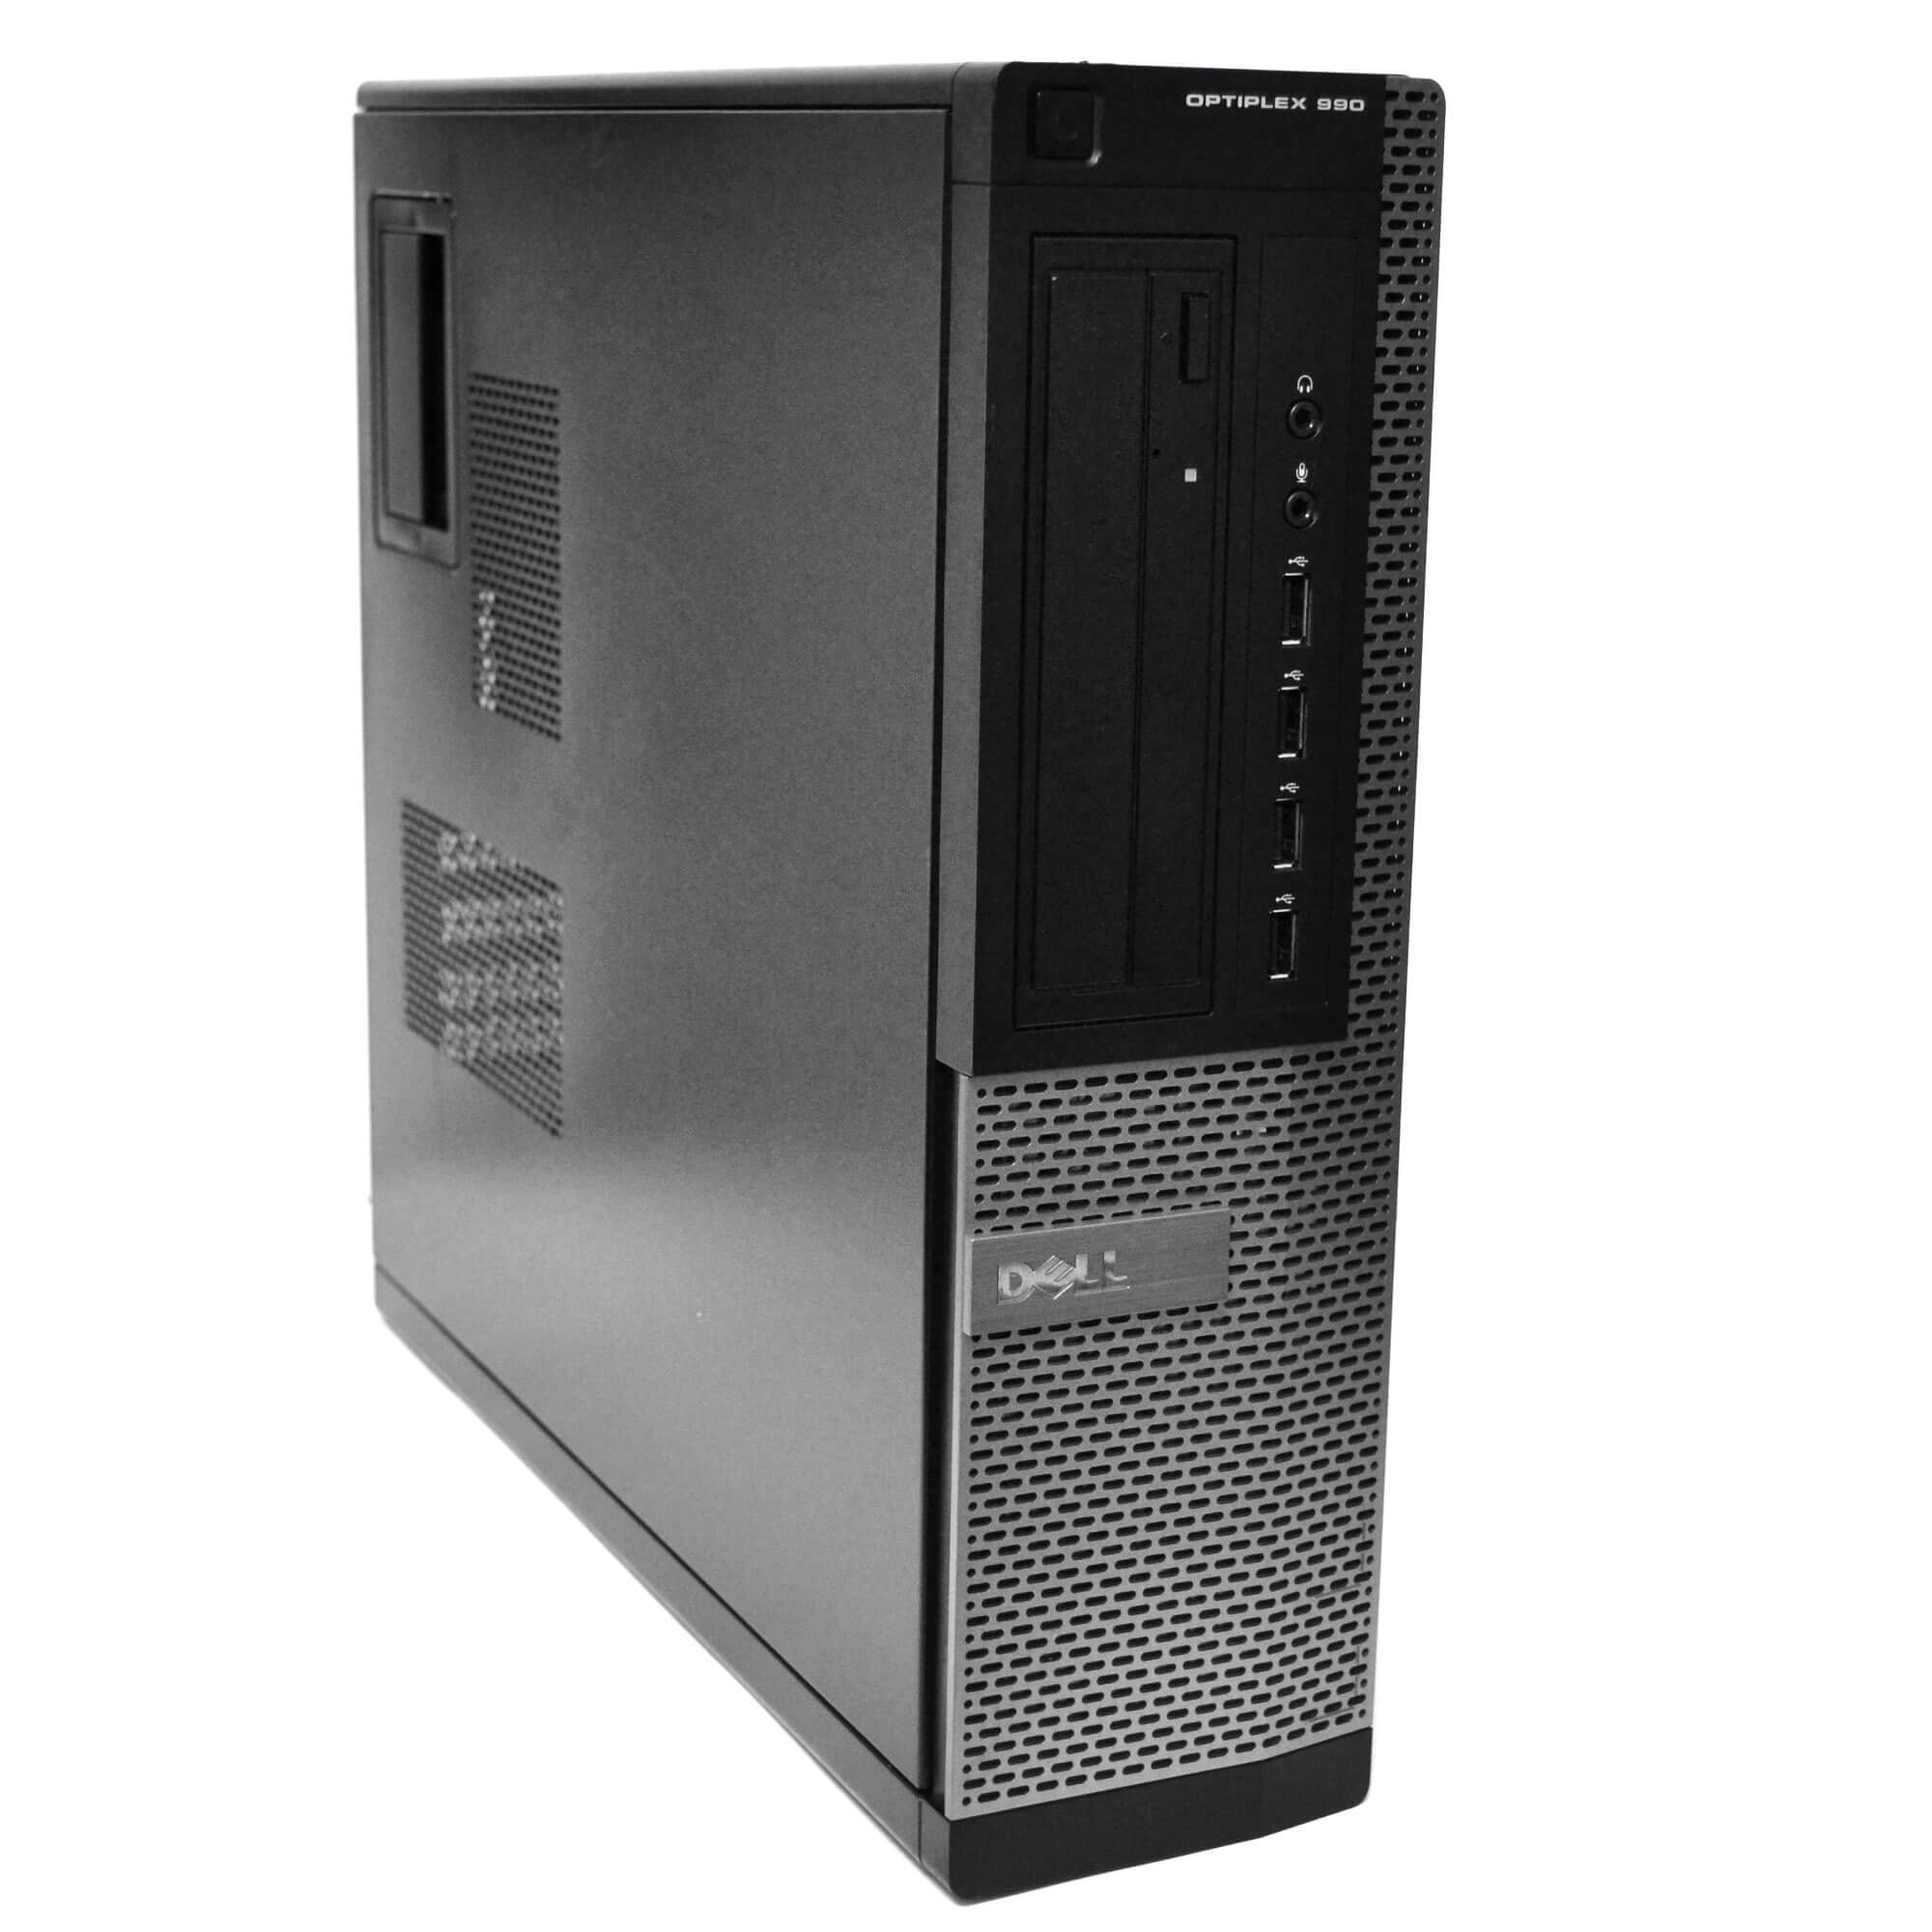 Certified Refurbished Dell Gray Optiplex 990 Desktop Intel Quad Core 3.1GHz 8GB RAM 320GB HDD Intel HD Graphics 2000 DVD-RW Windows 10 Professional